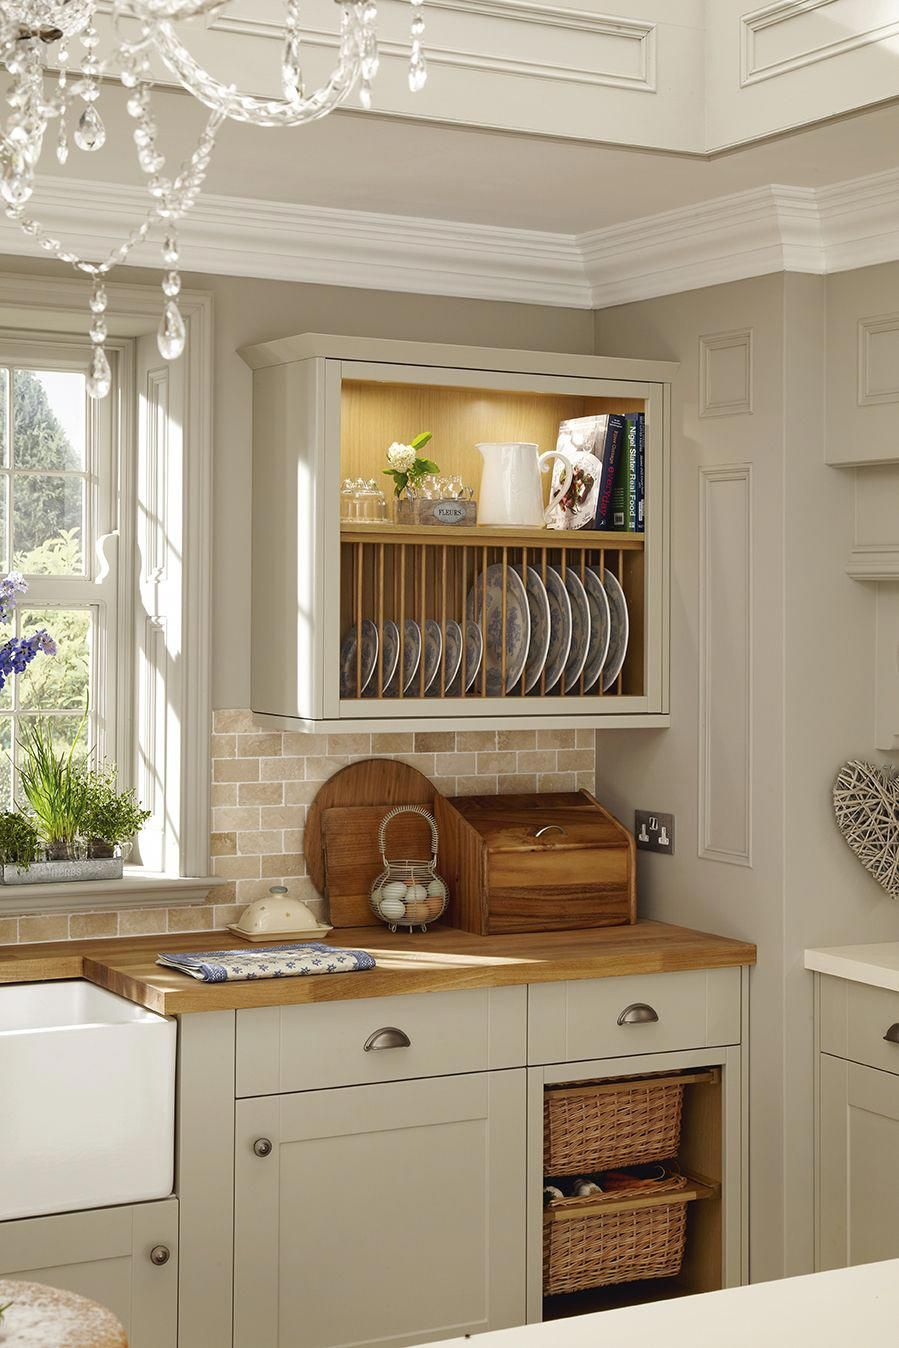 A Plate Rack And The Basket Drawers Add A Traditional Feature To This Grey Shaker Style Kitchen This Is Home Kitchens Shaker Style Kitchens Kitchen Cabinets